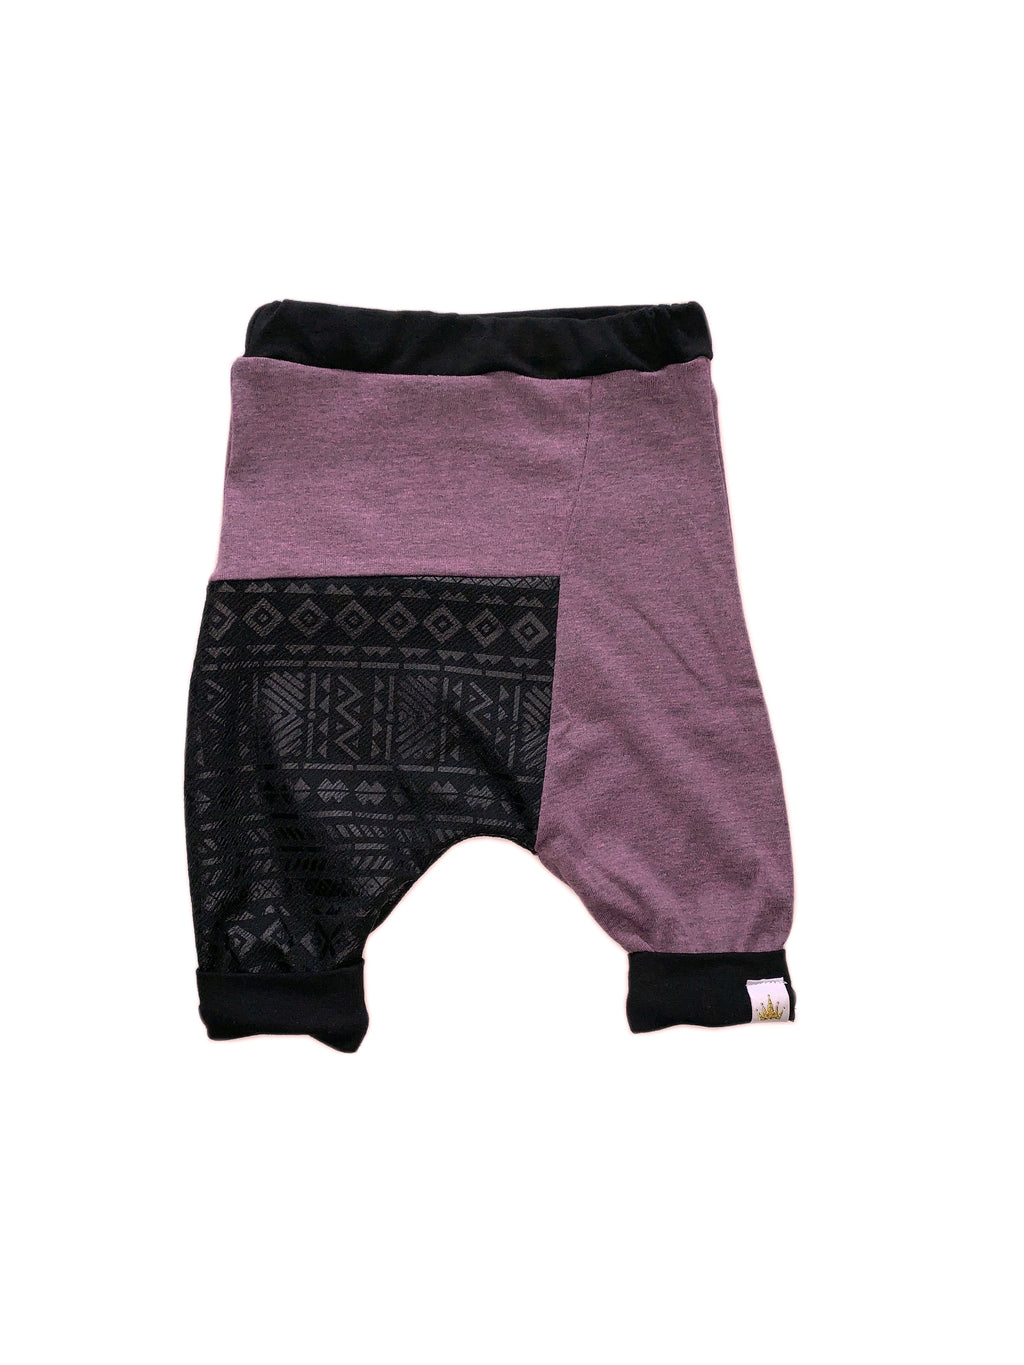 Seafoam Purple & Aztec Black Two Tone Harem Shorts